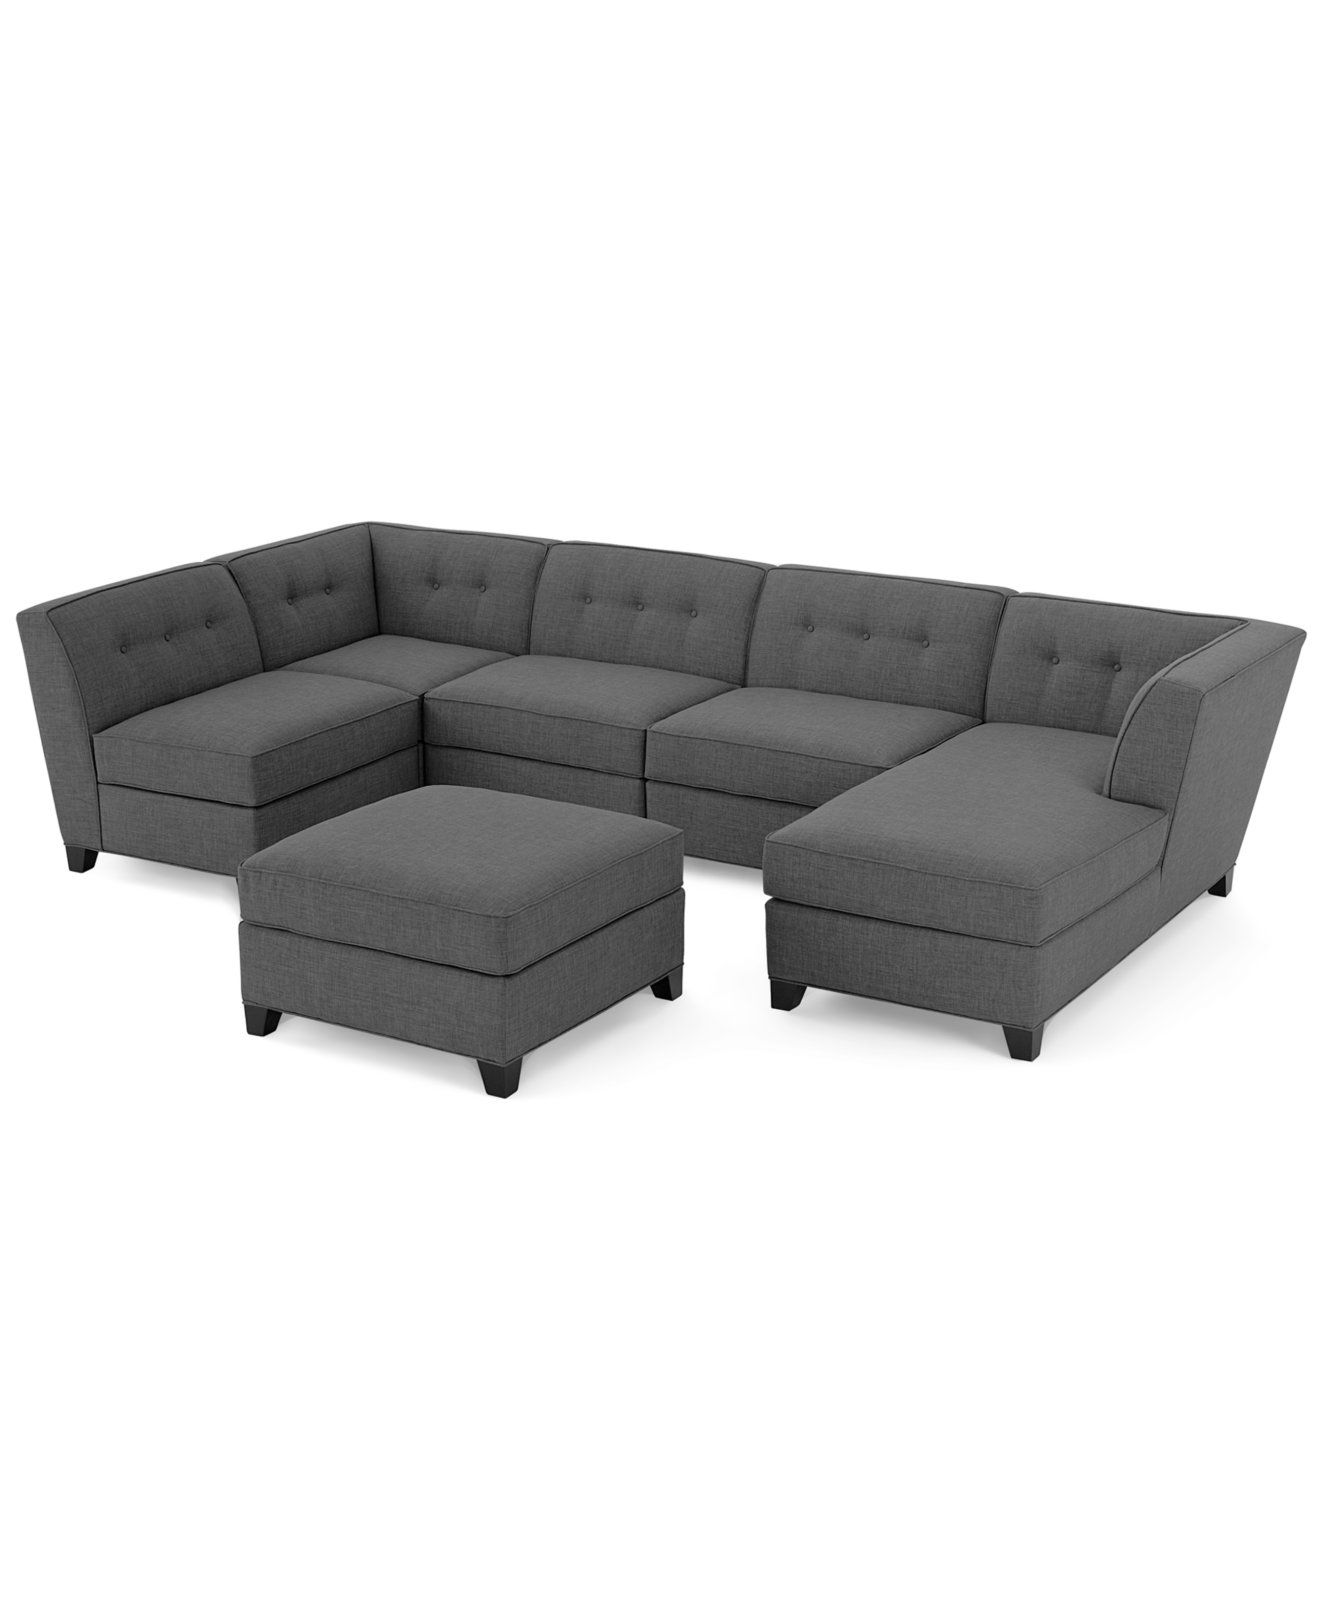 Harper Fabric 6 Piece Modular Sectional Sofa (Square Corner Unit, One Arm  Chaise, 3 Armless Chairs And Ottoman)   Sectional Sofas   Furniture   Macyu0027s